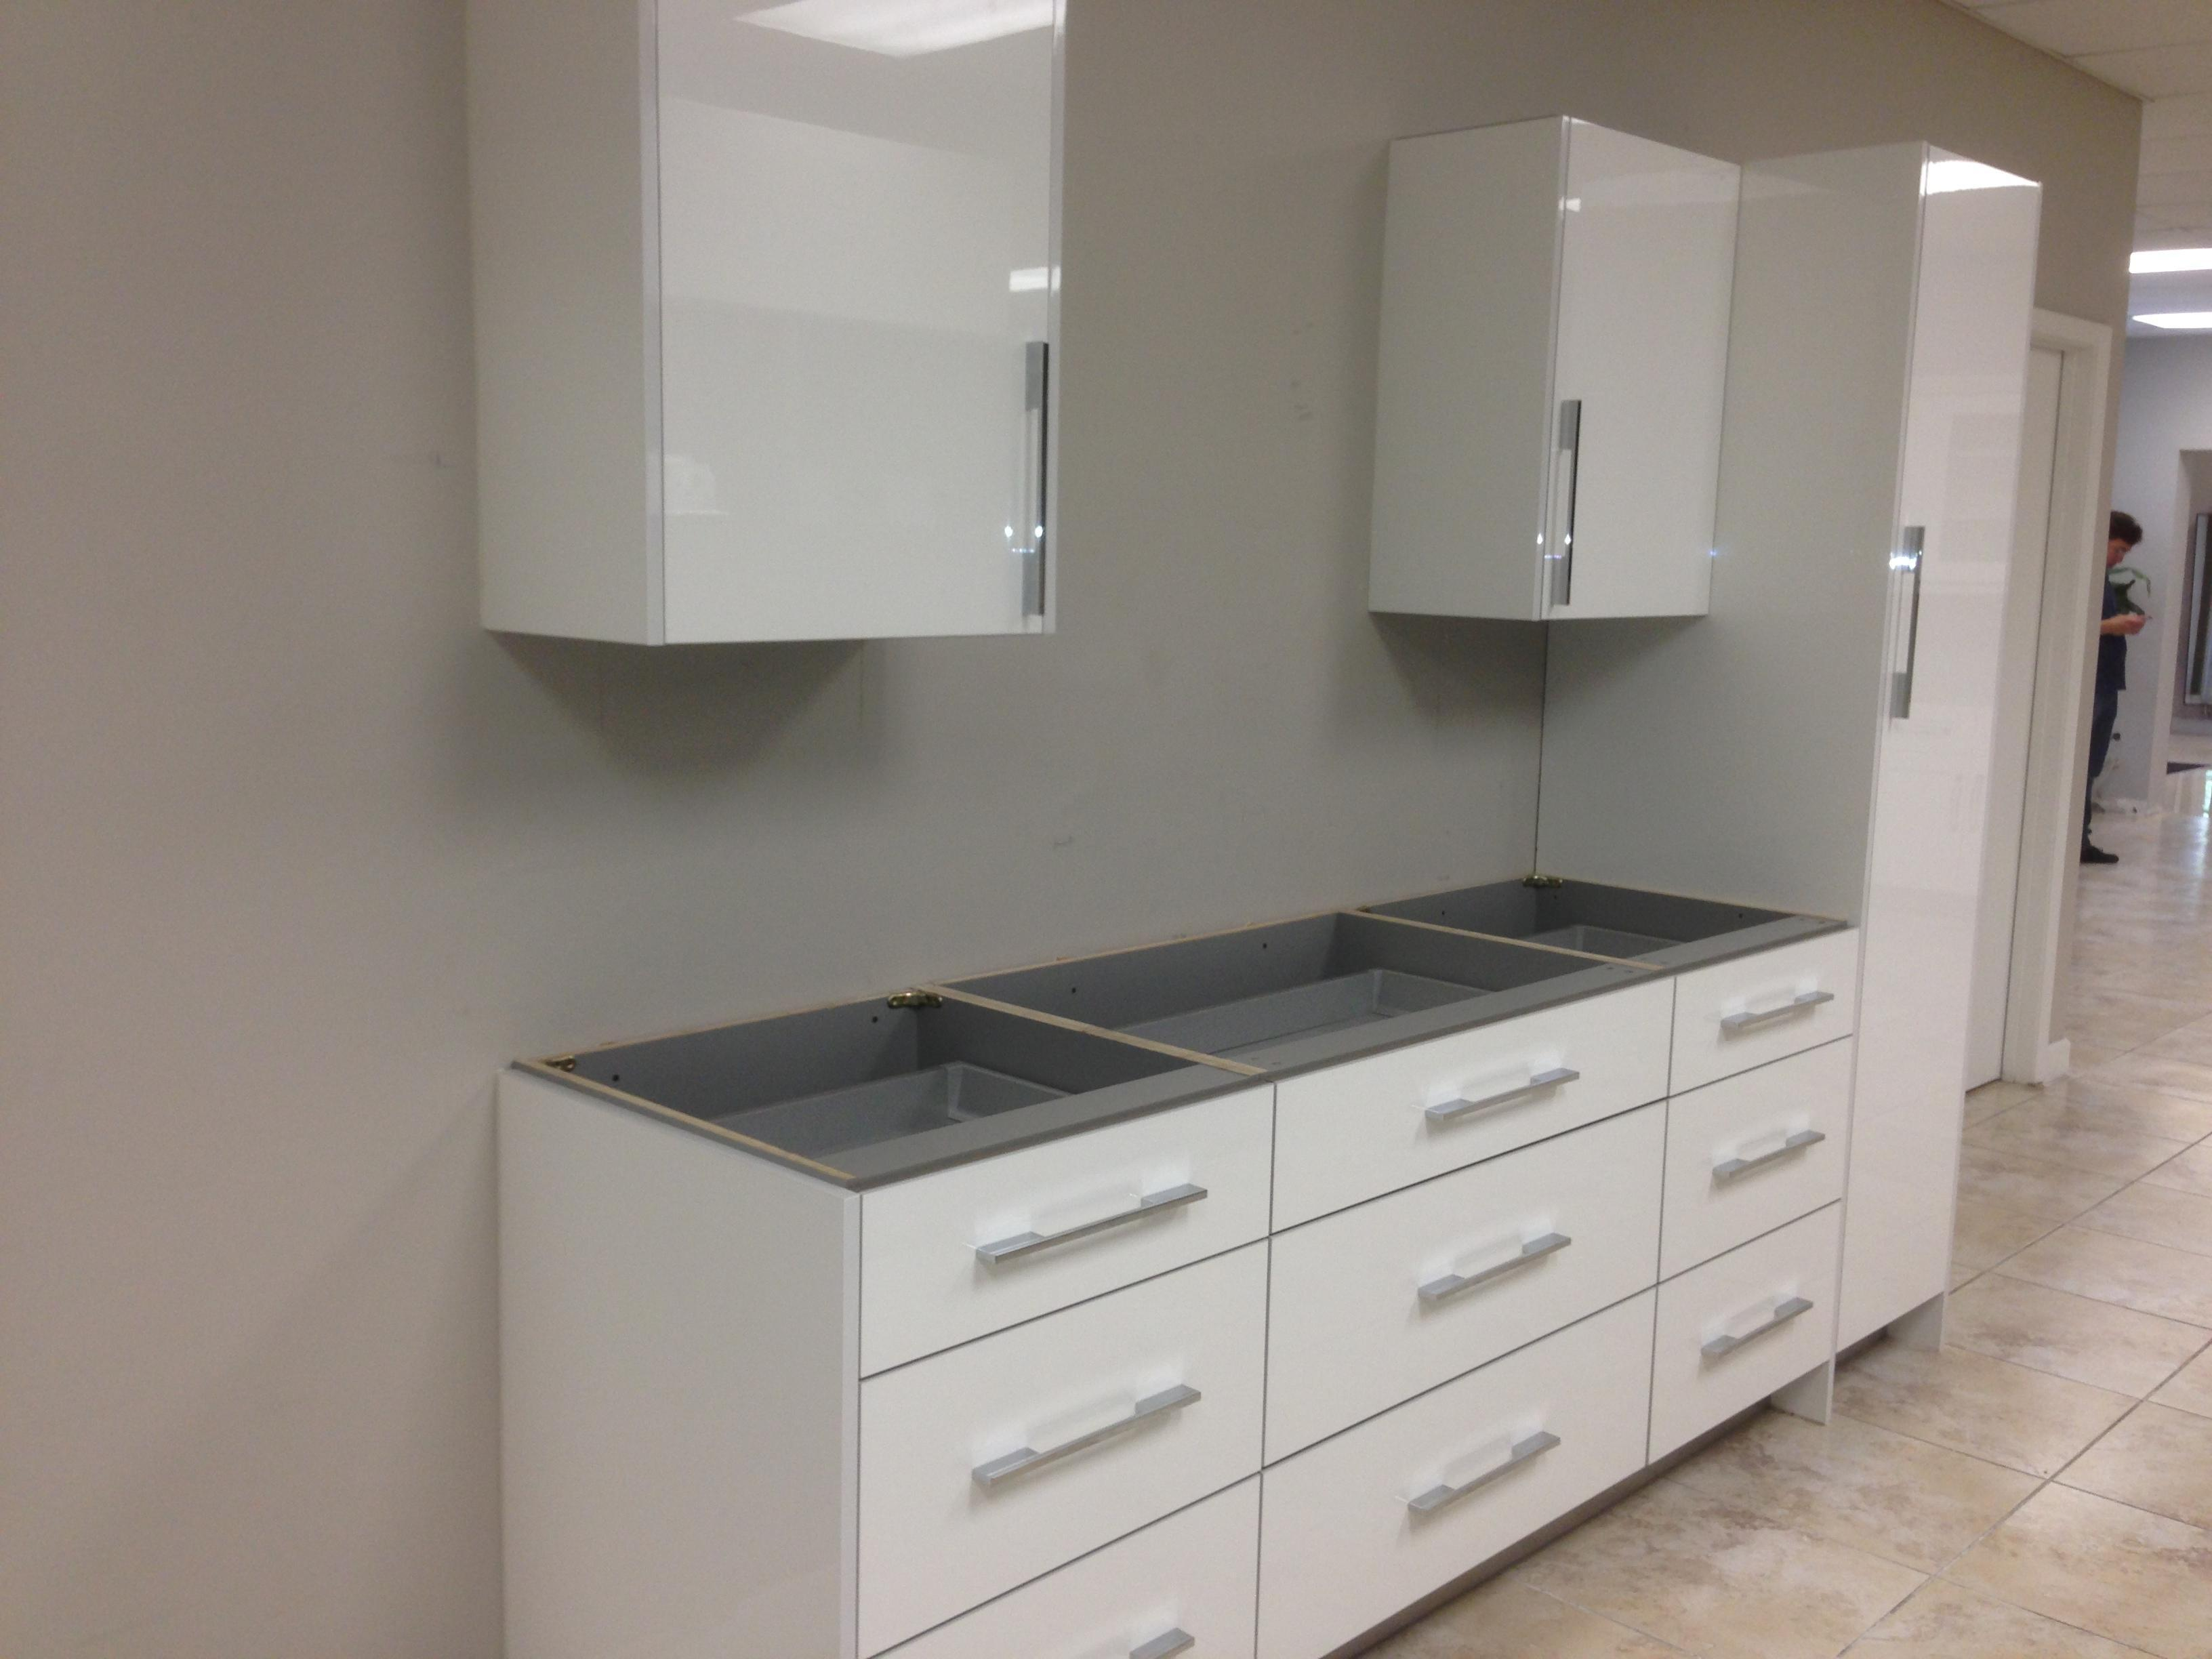 411 Kitchen Cabinets Granite Of West Palm Beach In Lake Worth FL